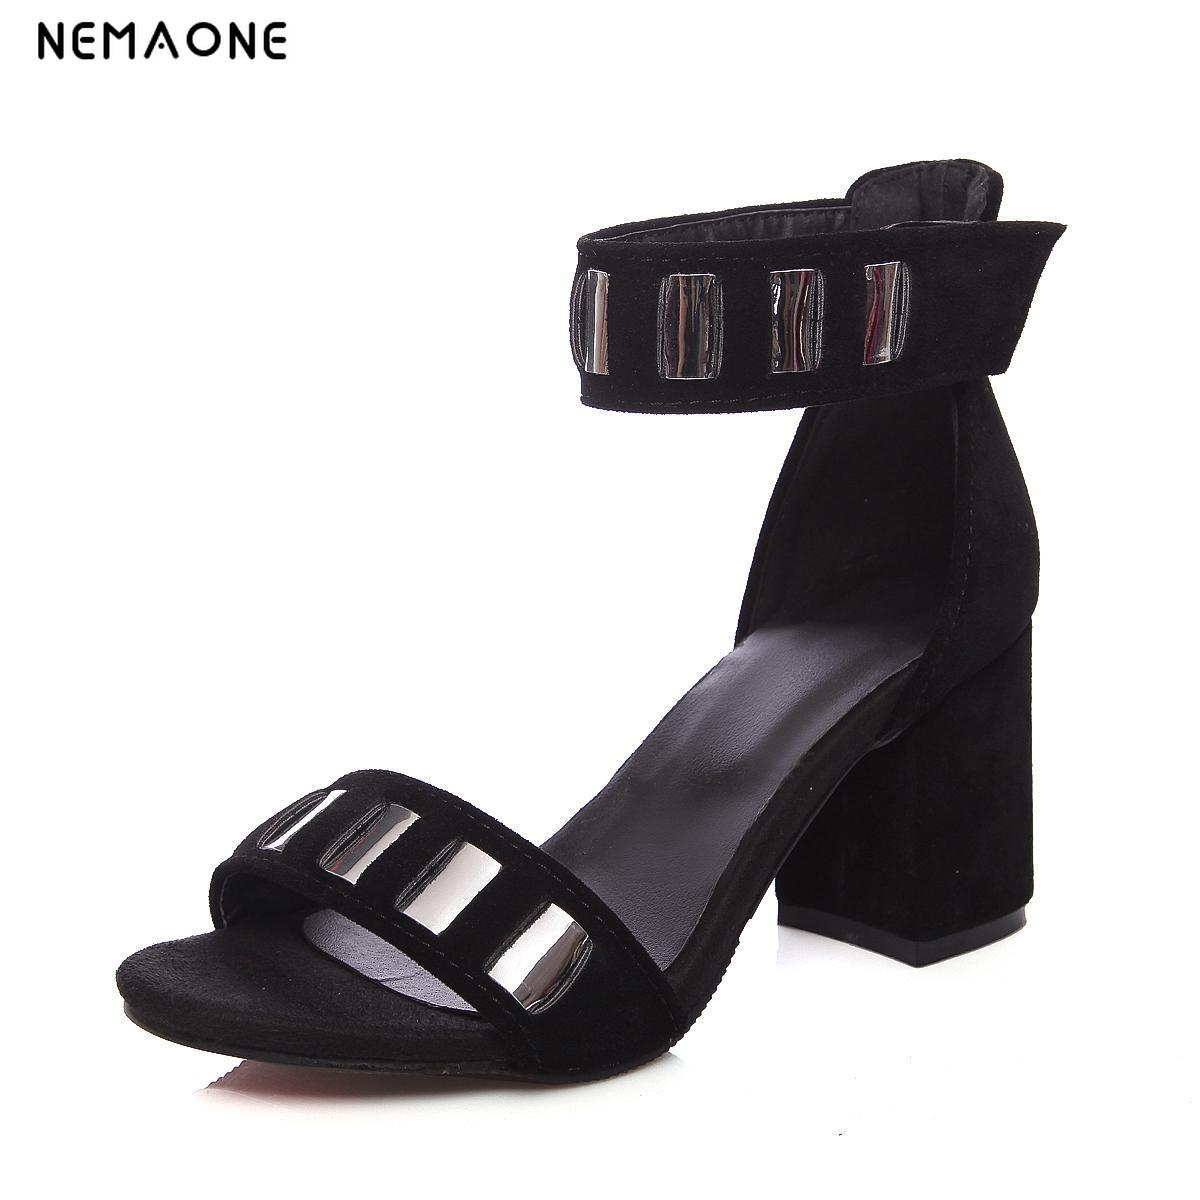 NEMAONE 2017 New women shoes sexy high heels sandals ankle strap women sandals summer shoes woman open toe ladies  size 34-43 new arrival black brown leather summer ankle strappy women sandals t strap high thin heels sexy party platfrom shoes woman